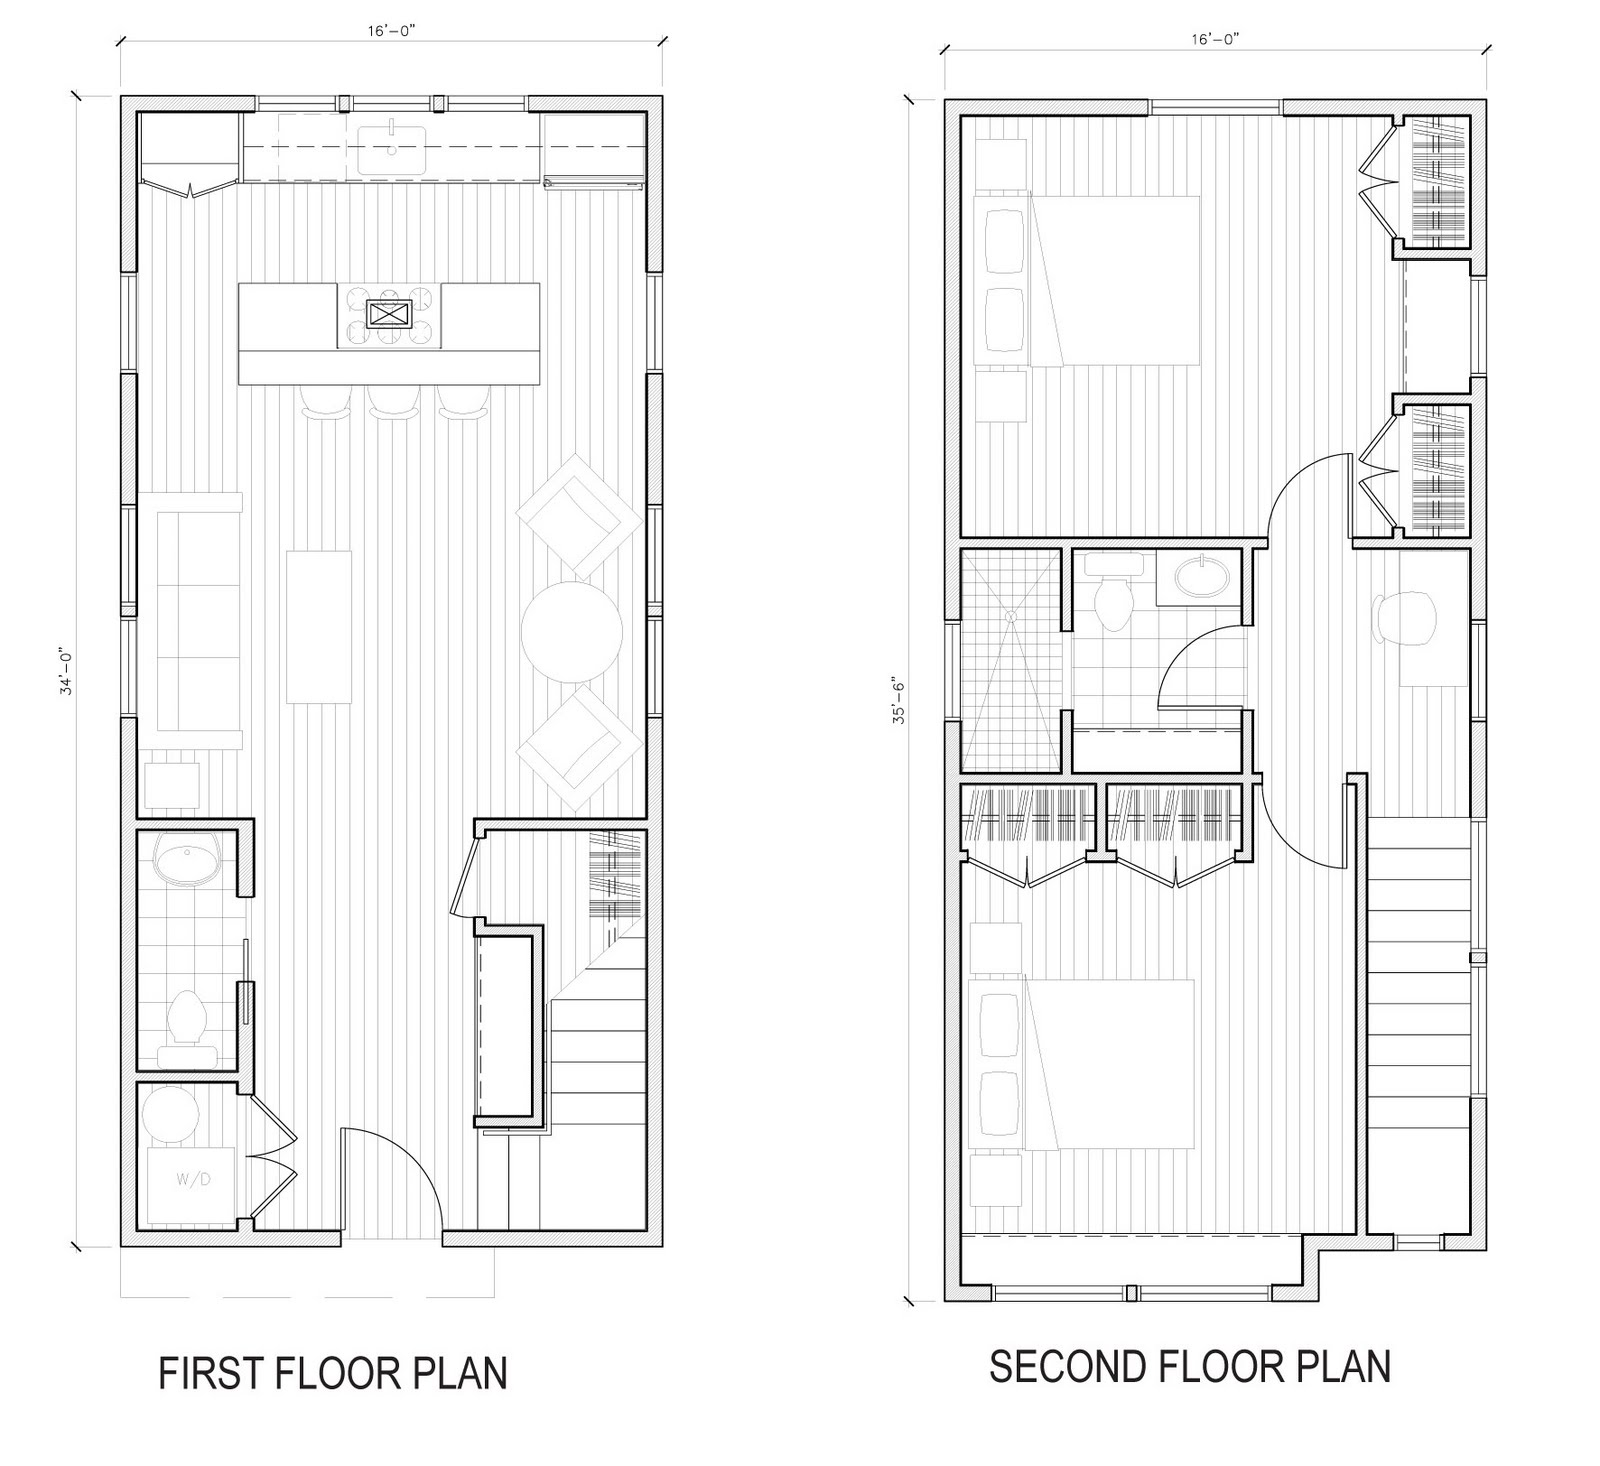 1000 sq ft house plans with loft joy studio design Small home floor plans under 1000 sq ft